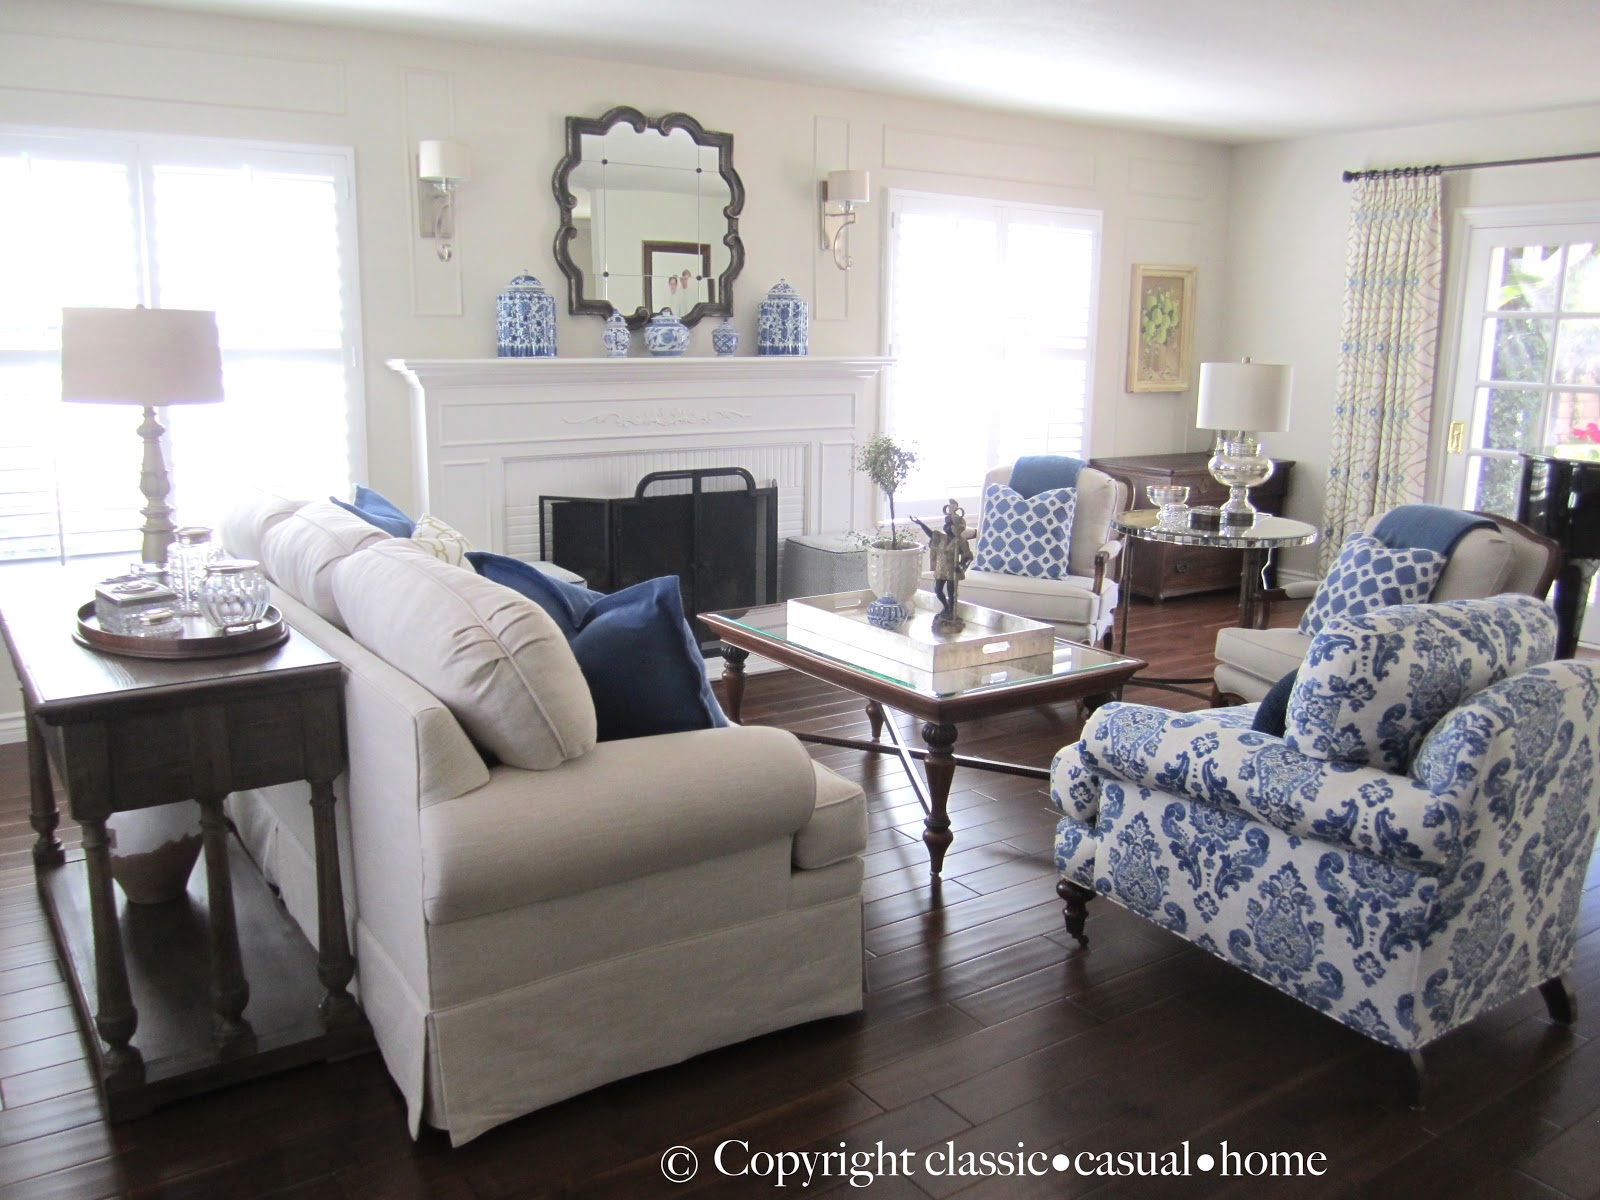 Blue white and silver timeless design classic casual home for Blue living room decor ideas